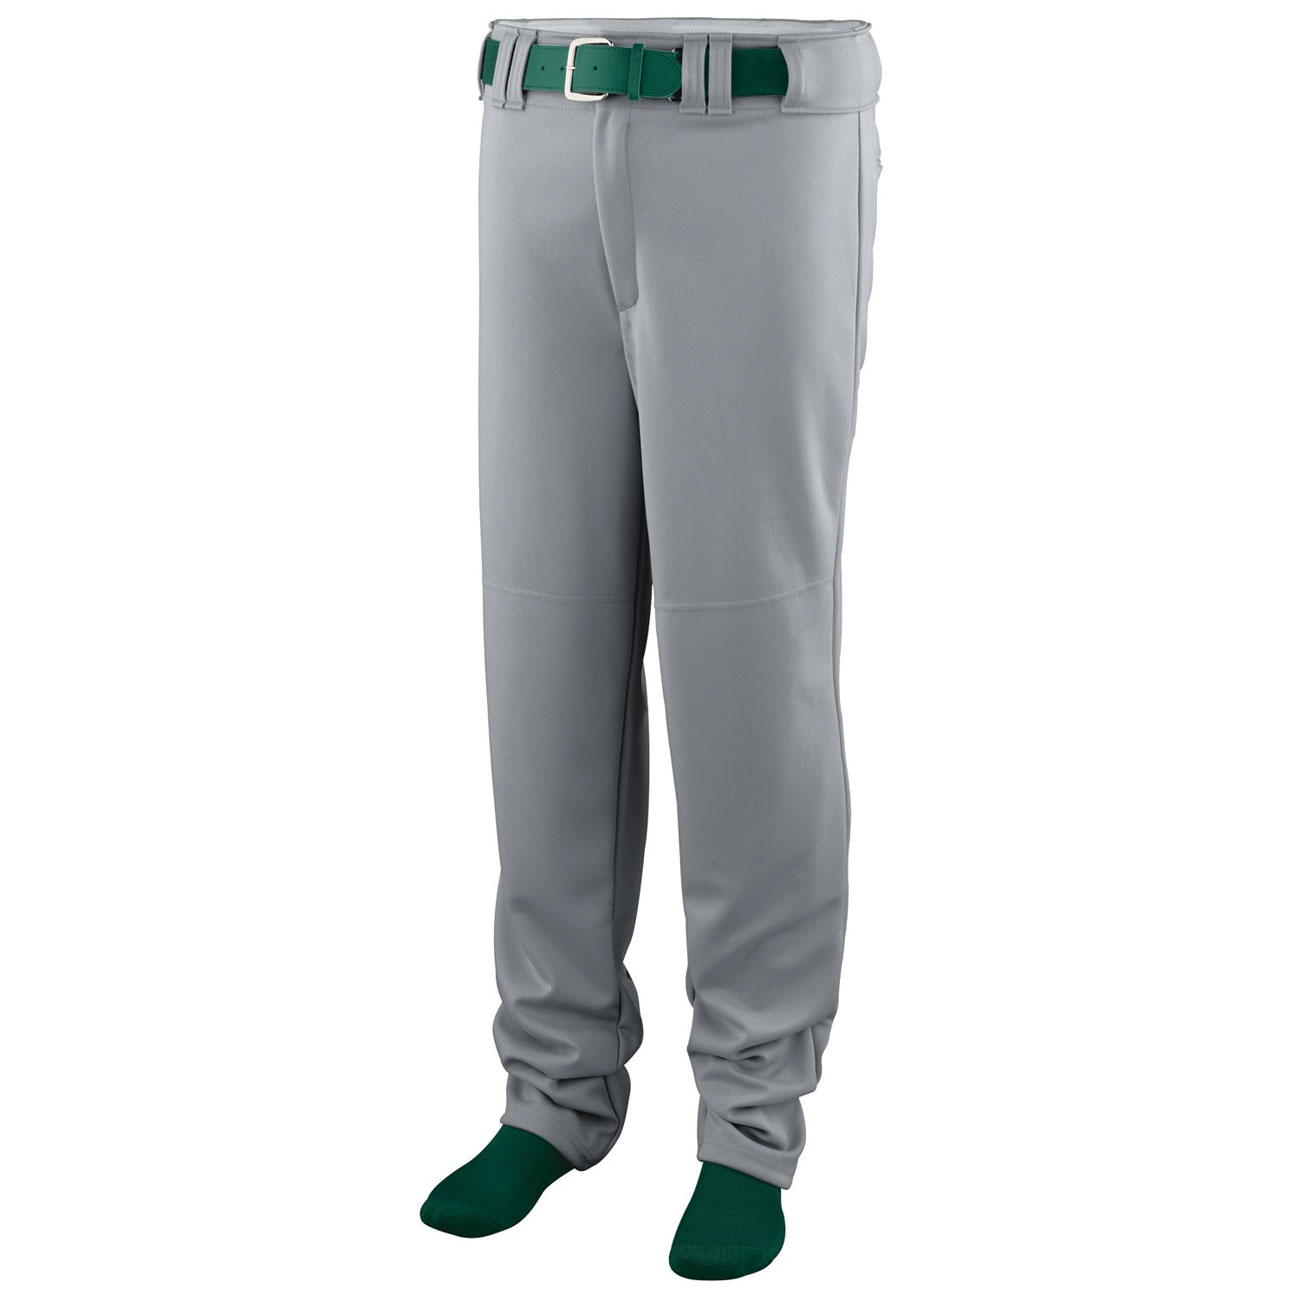 Adult 11 oz. Baseball/Softball Pant